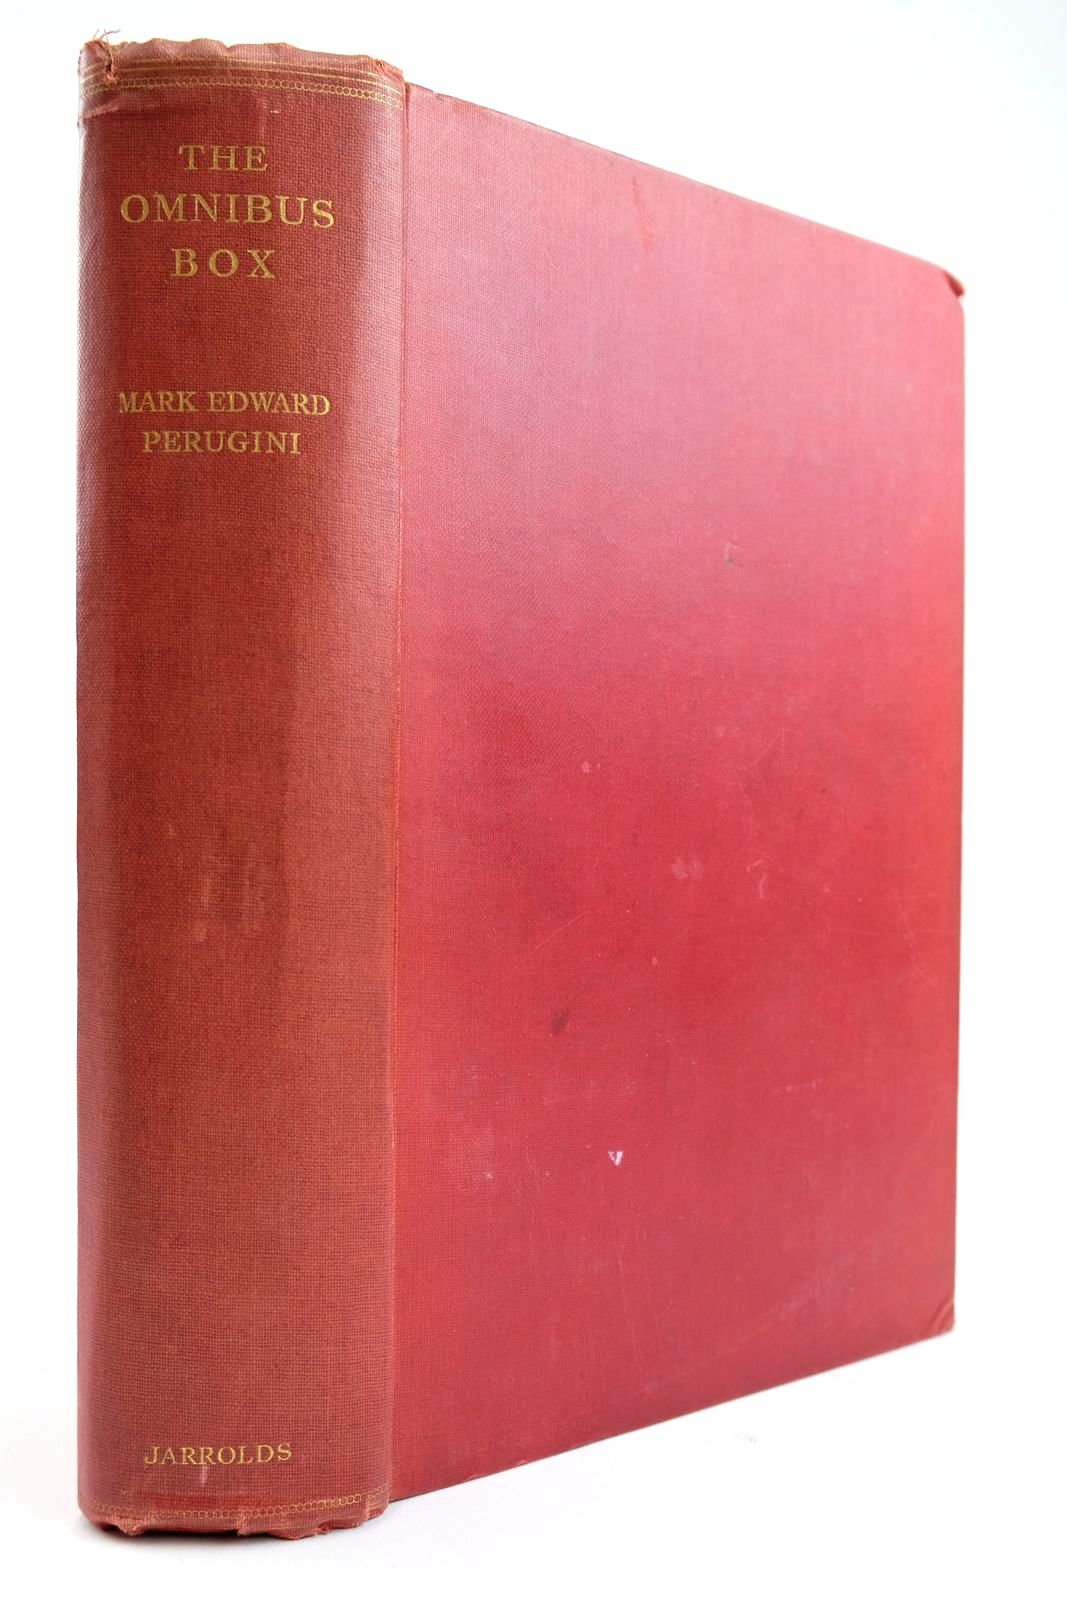 Photo of THE OMNIBUS BOX: BEING DIGRESSIONS AND ASIDES ON SOCIAL AND THEATRICAL LIFE IN LONDON AND PARIS, 1830-1850- Stock Number: 2134003